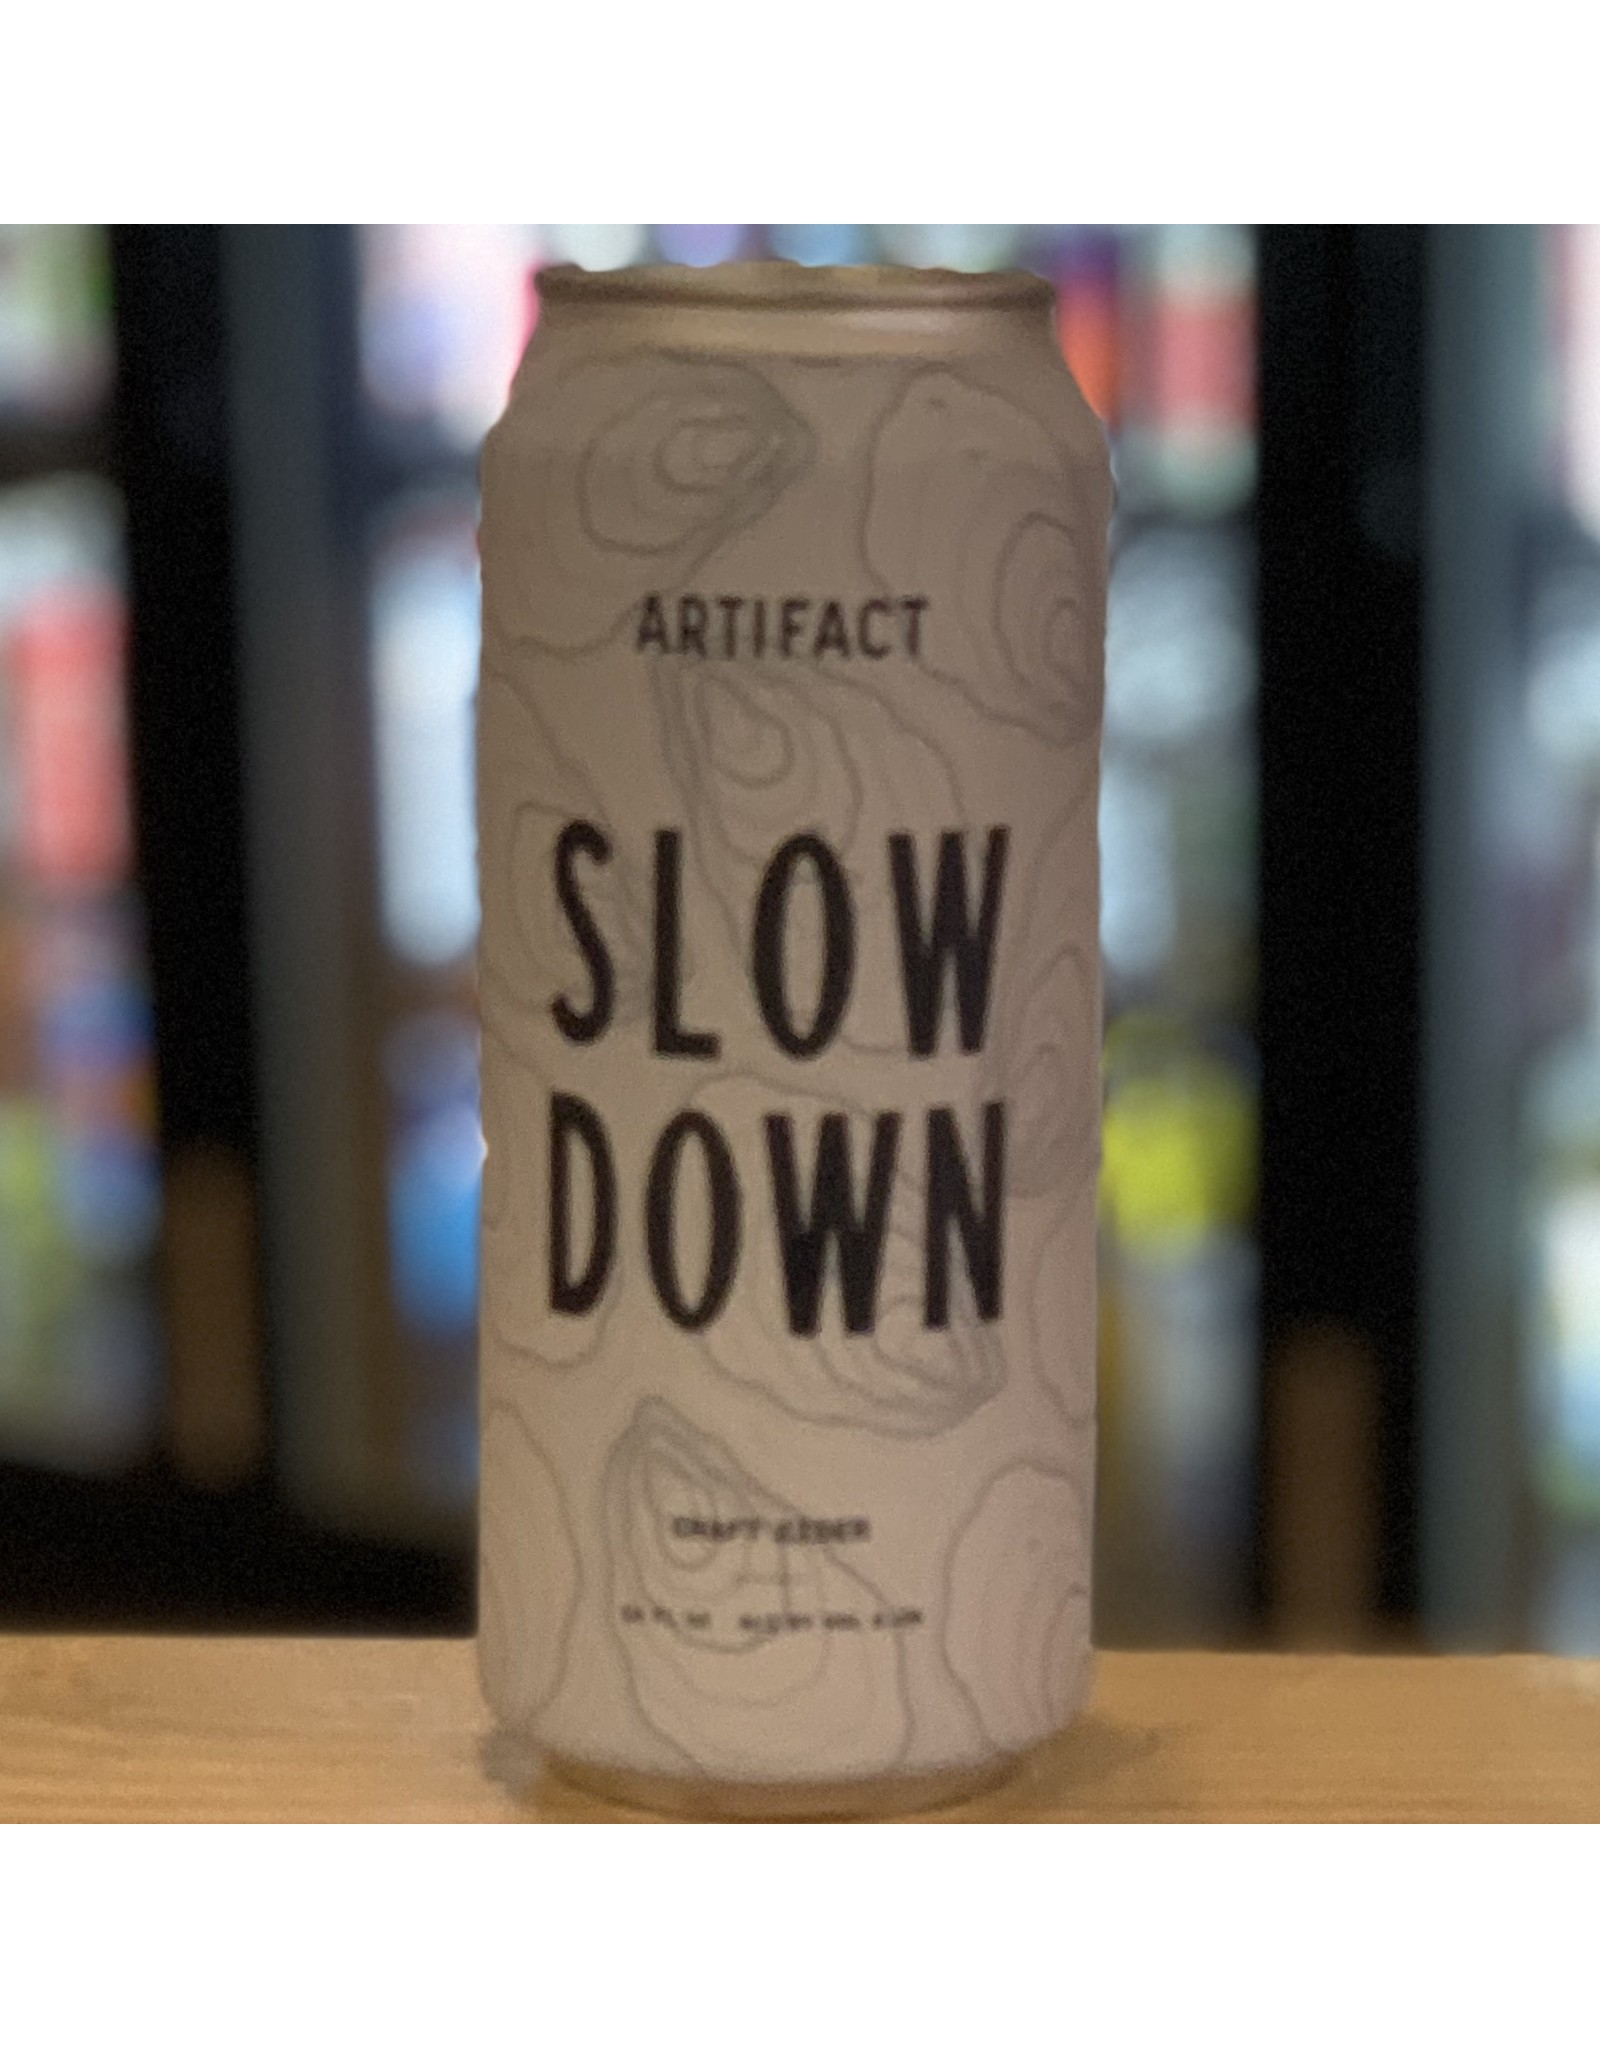 Cider Artifact ''Slow Down'' Semi-Sweet Cider - Florence, MA